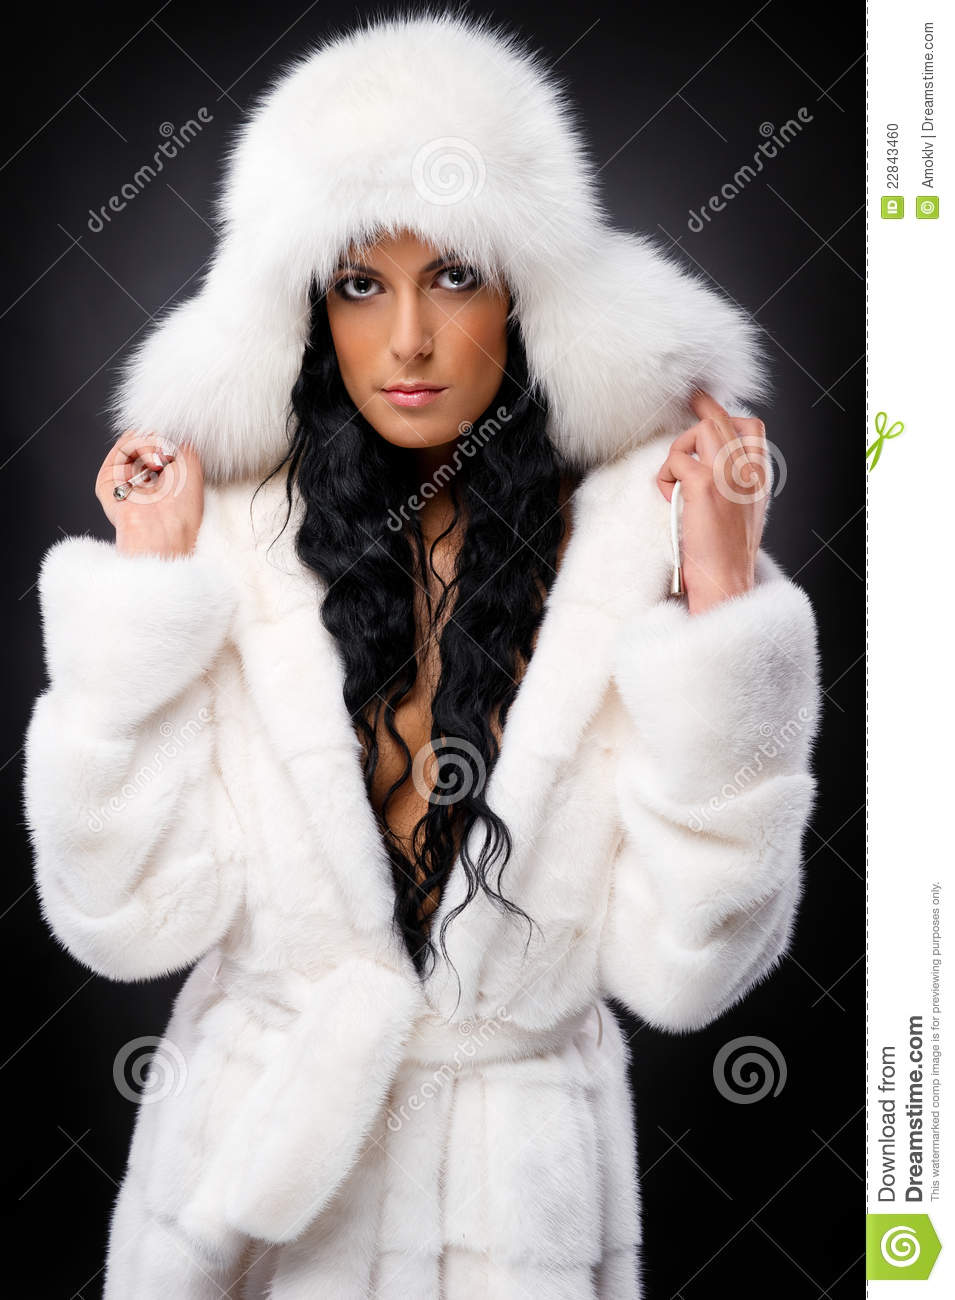 Woman In White Fur Coat And Hat Stock Photo - Image: 22843460